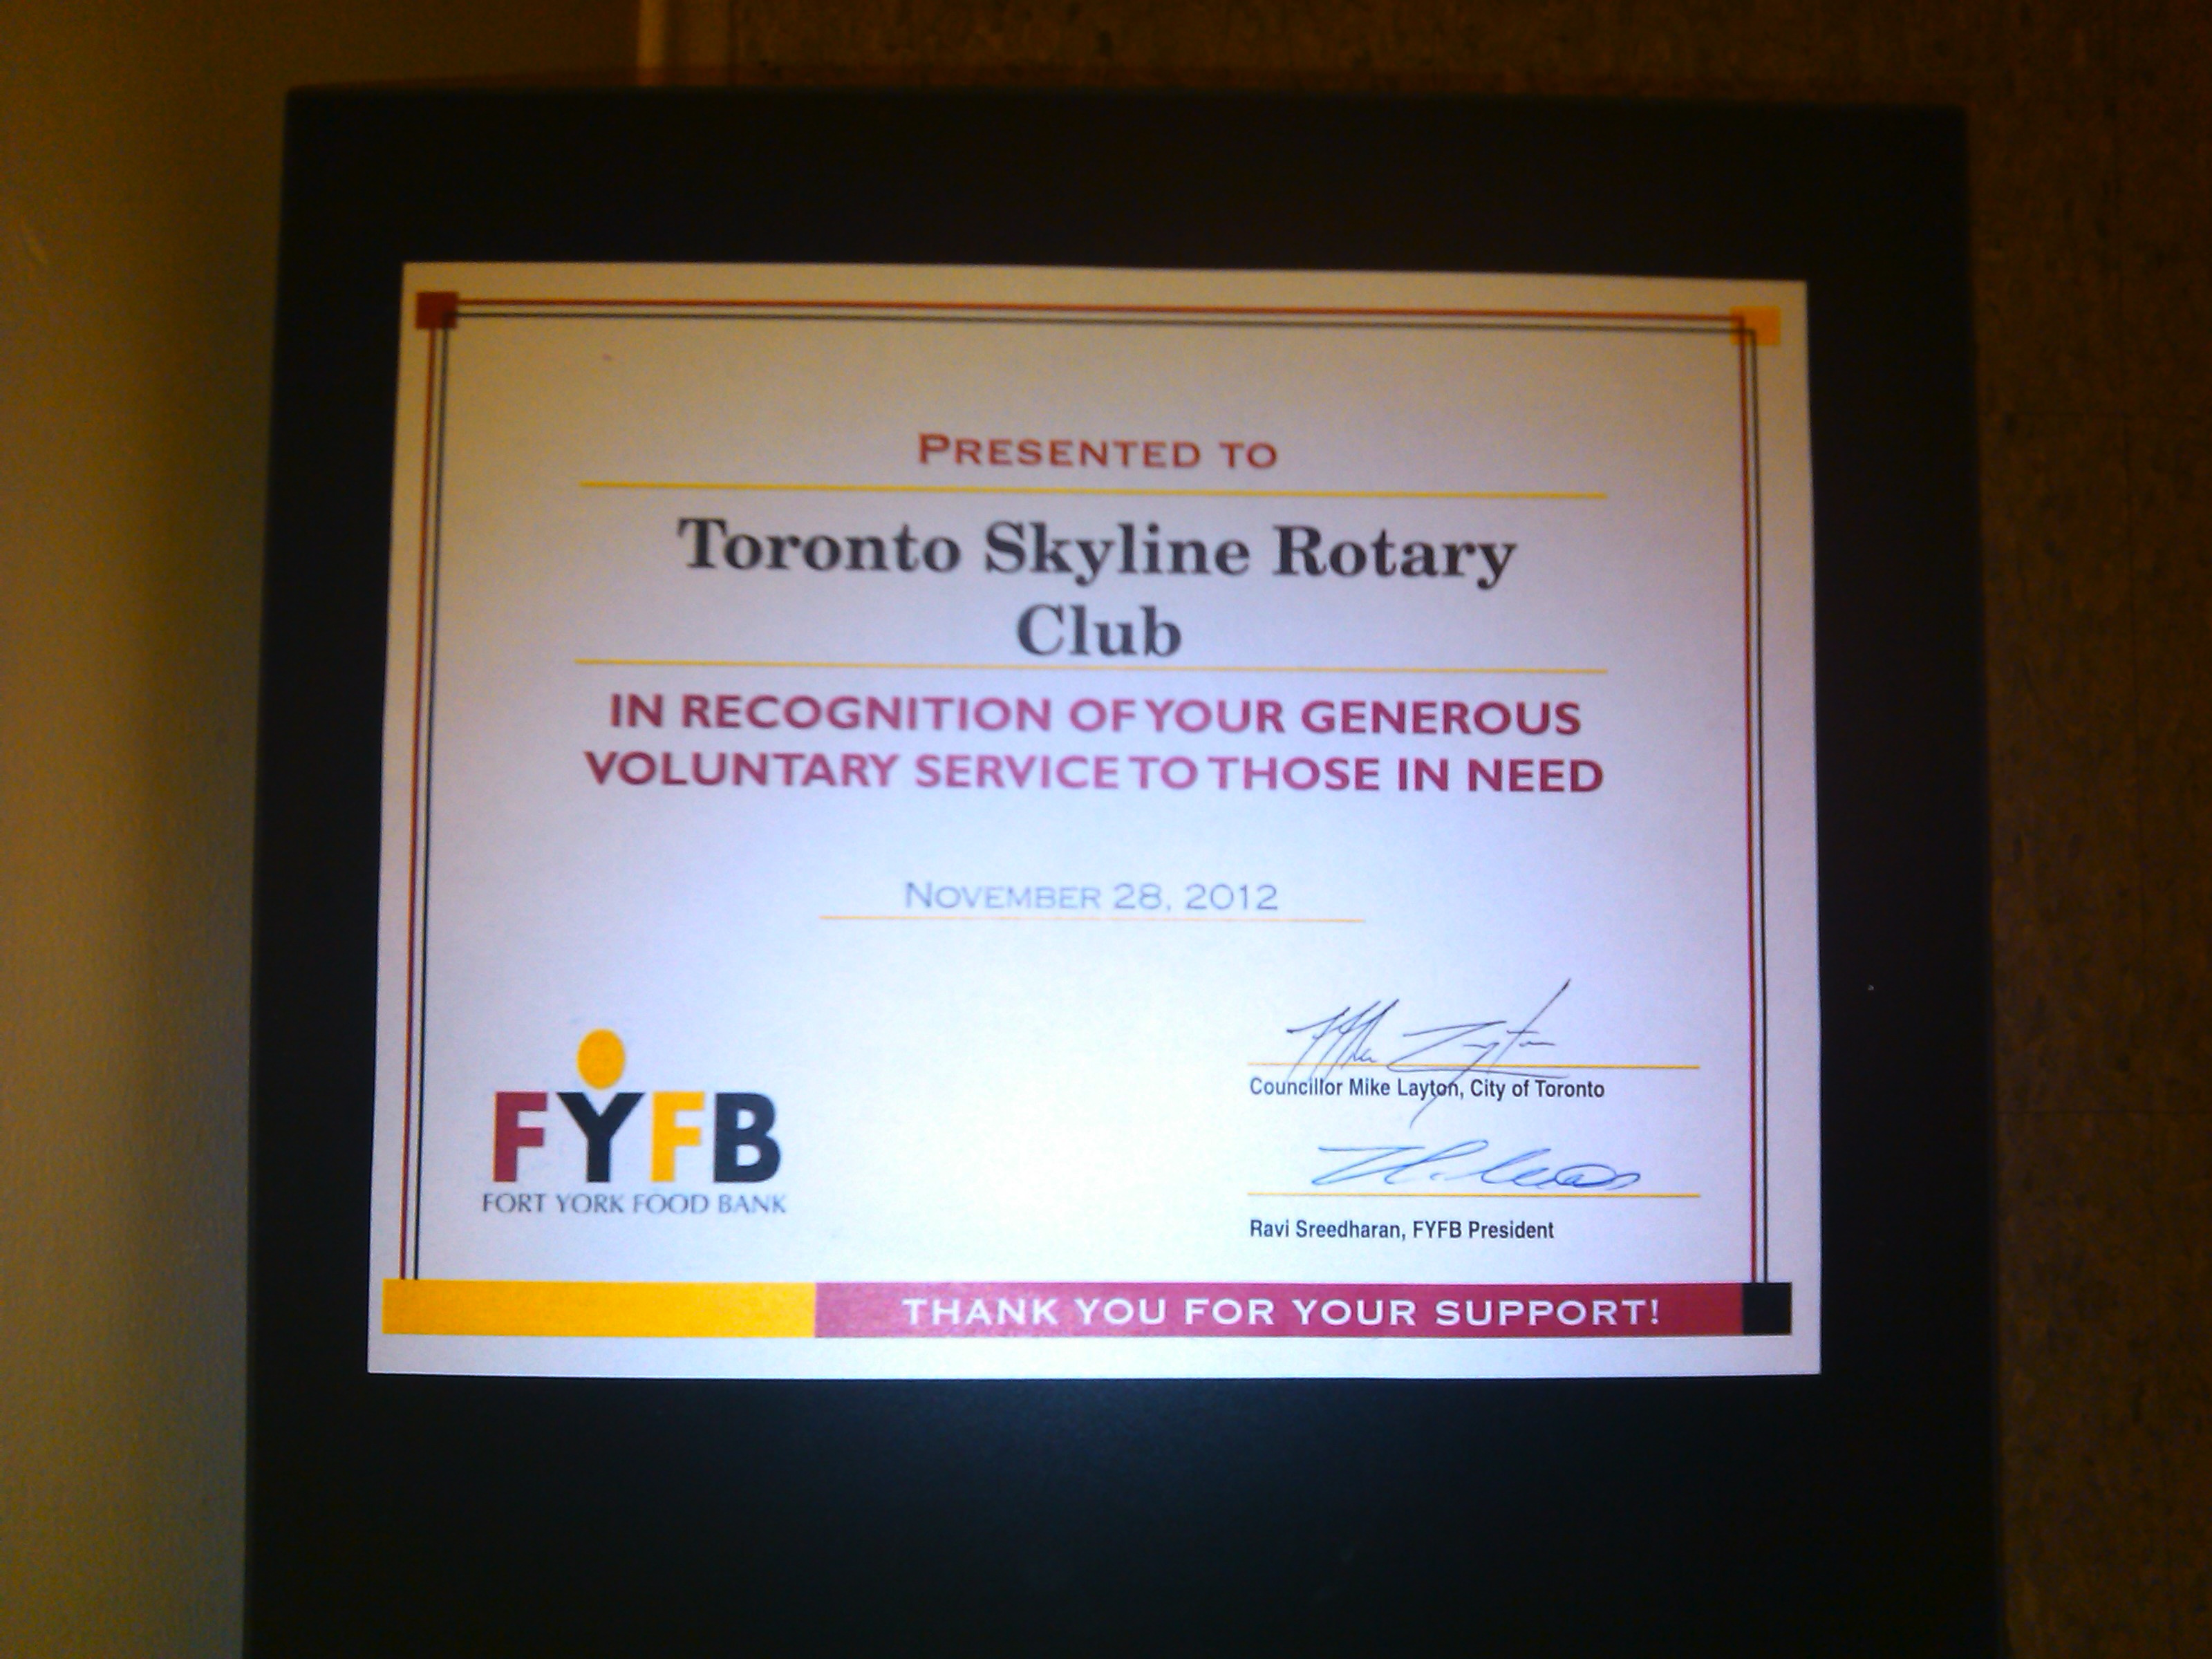 Fort york food bank certificate rotary club of toronto skyline 3200 2400 pixels fort york food bank certificate xflitez Gallery